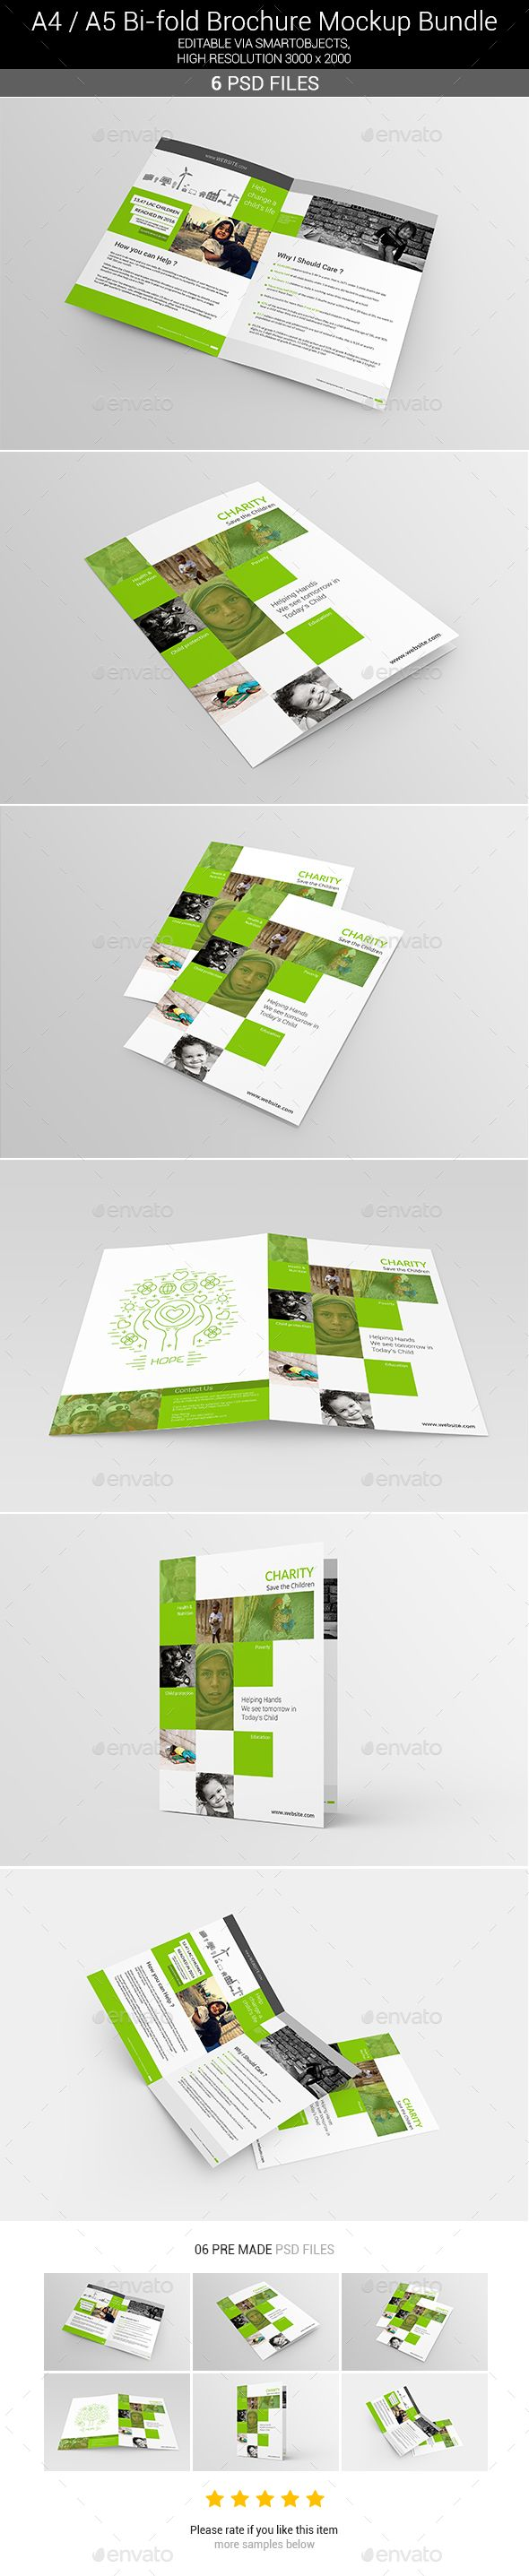 Bi-Fold Brochure Mockups By Shrdesign Hello Everyone Greetings. Presenting  Bi-Fold Brochure Mockups,this Mockup Is Best For Your Bi-Fold And Designs.